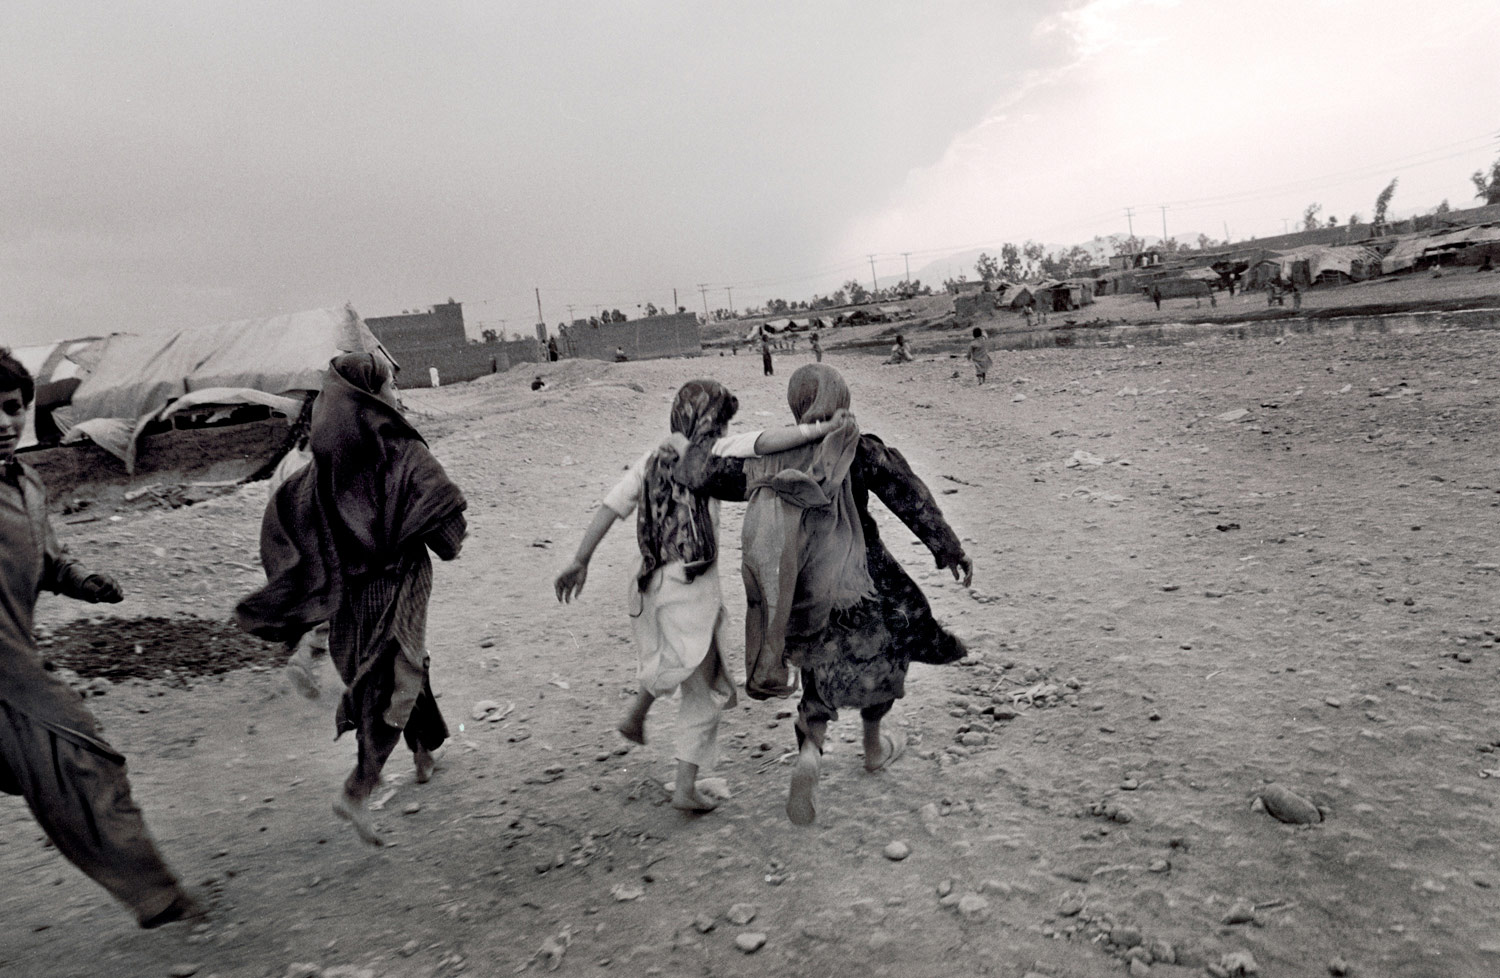 Afghans refugees in Peshawar, Pakistan, in 2001, as U.S.-led military action in Afghanistan was about to begin.